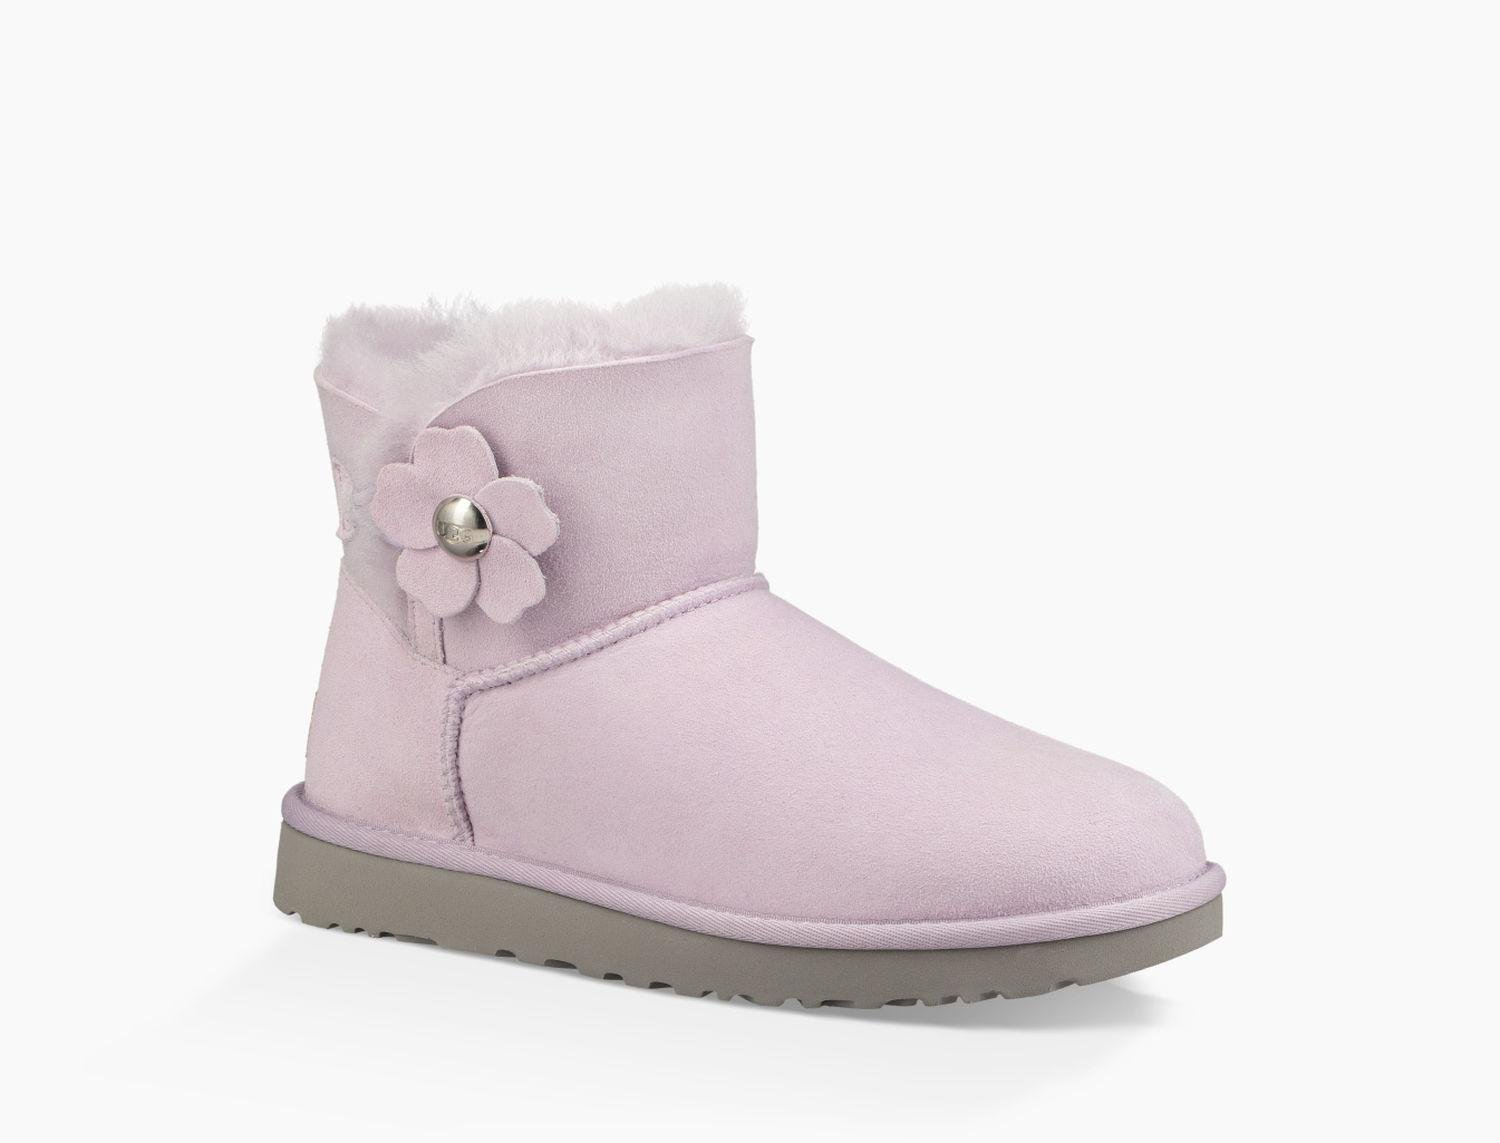 UGG Womens Mini Bailey Button Poppy 1092295 Lavender Size 8